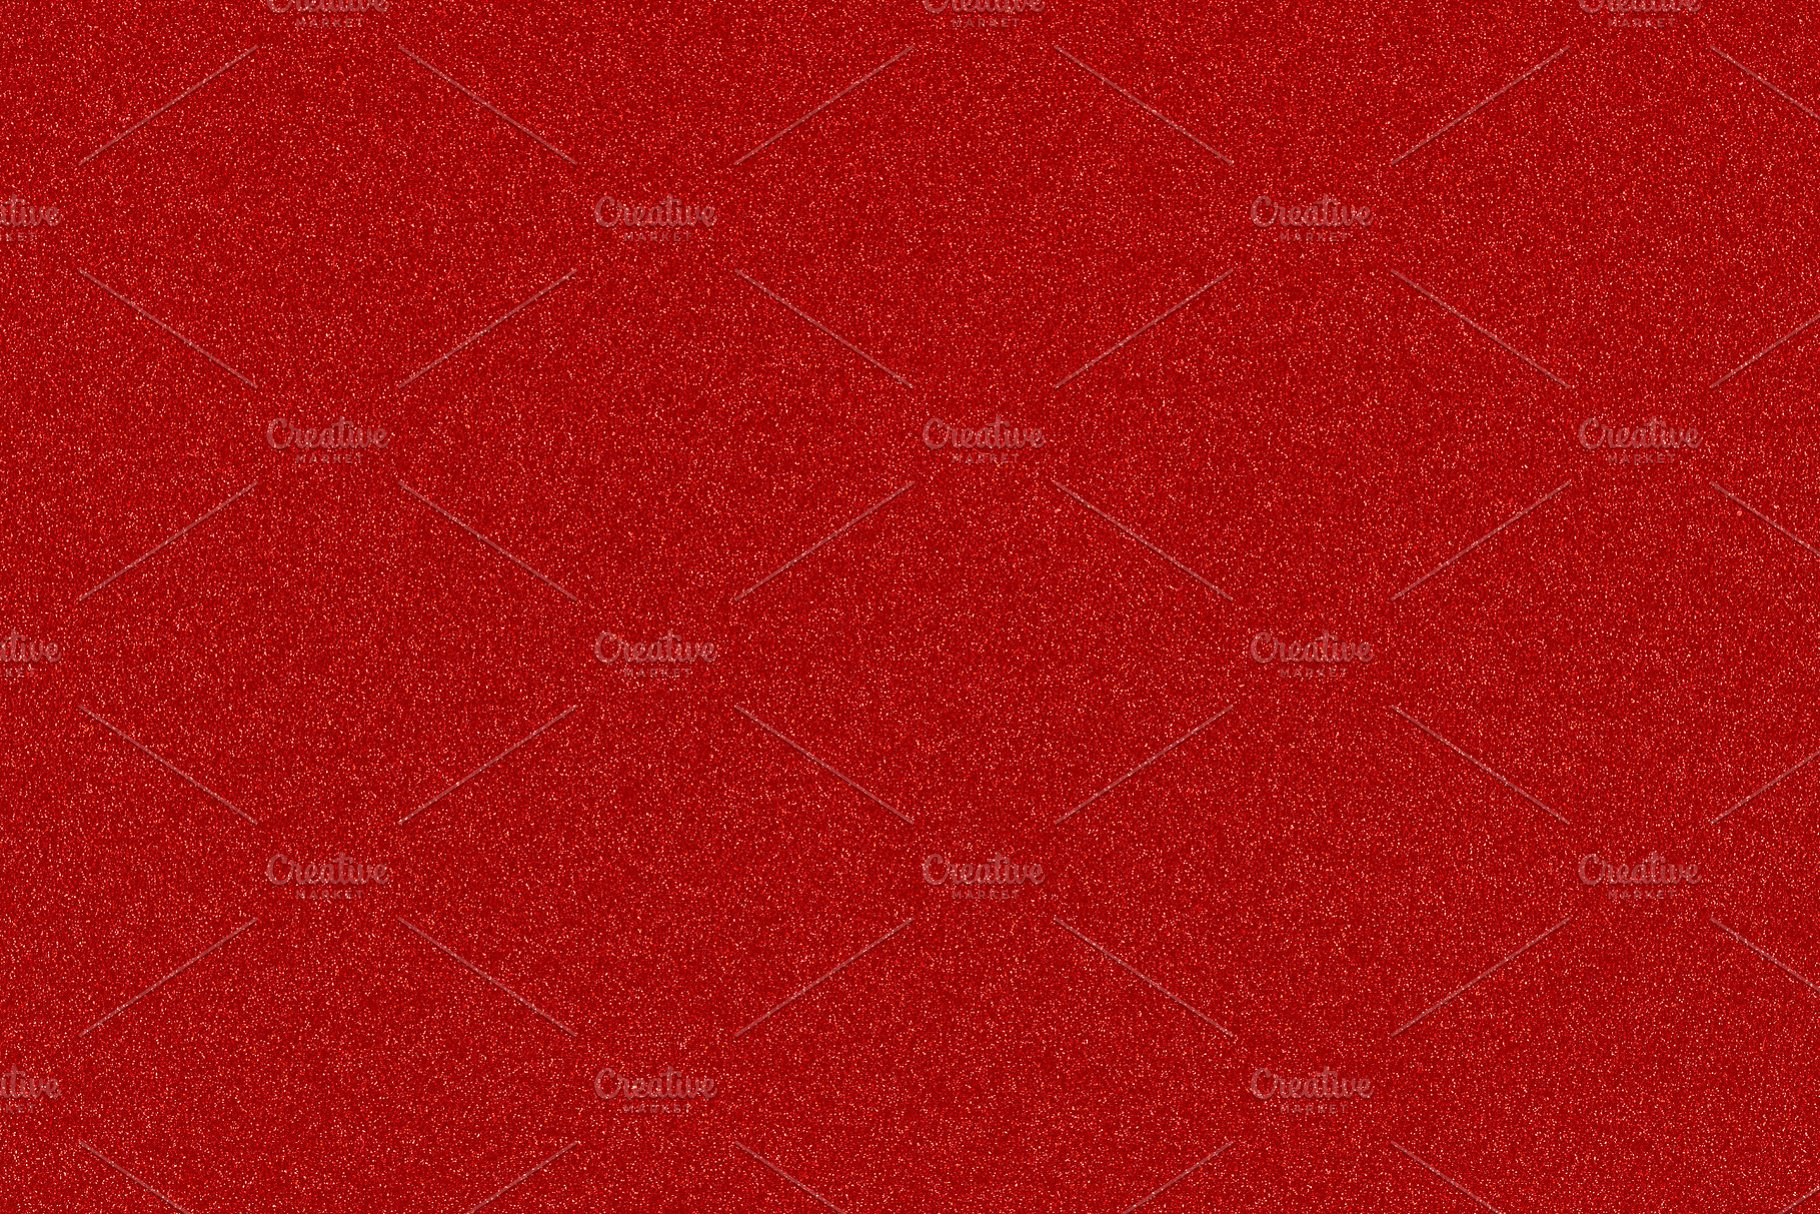 Red Christmas Background.Red Christmas Background With Shiny Color Speckles